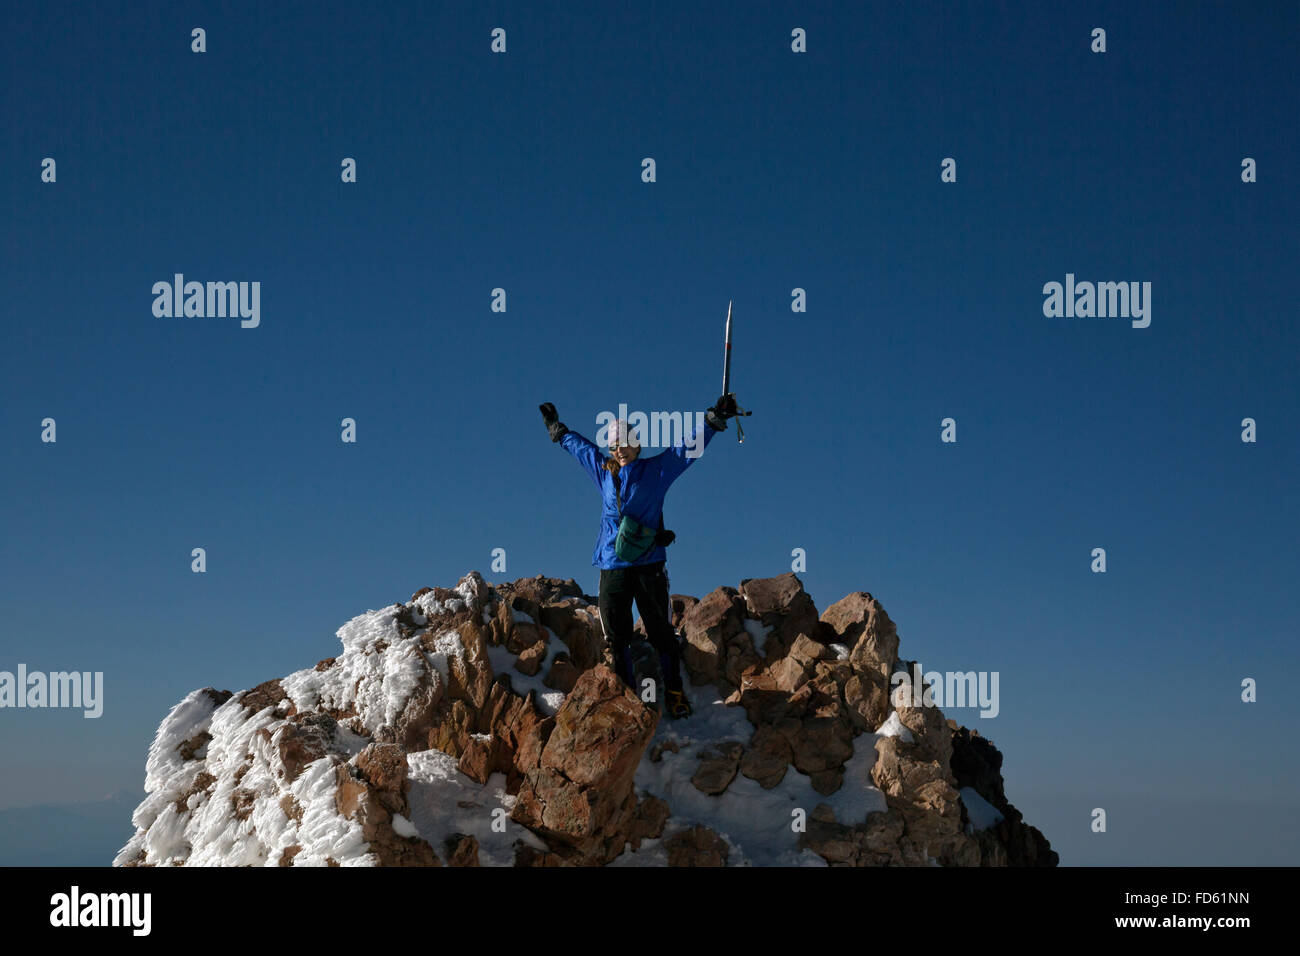 CA02633-00...CALIFORNIA - Climber on the summit of 14,612-foot Mount Shasta. - Stock Image